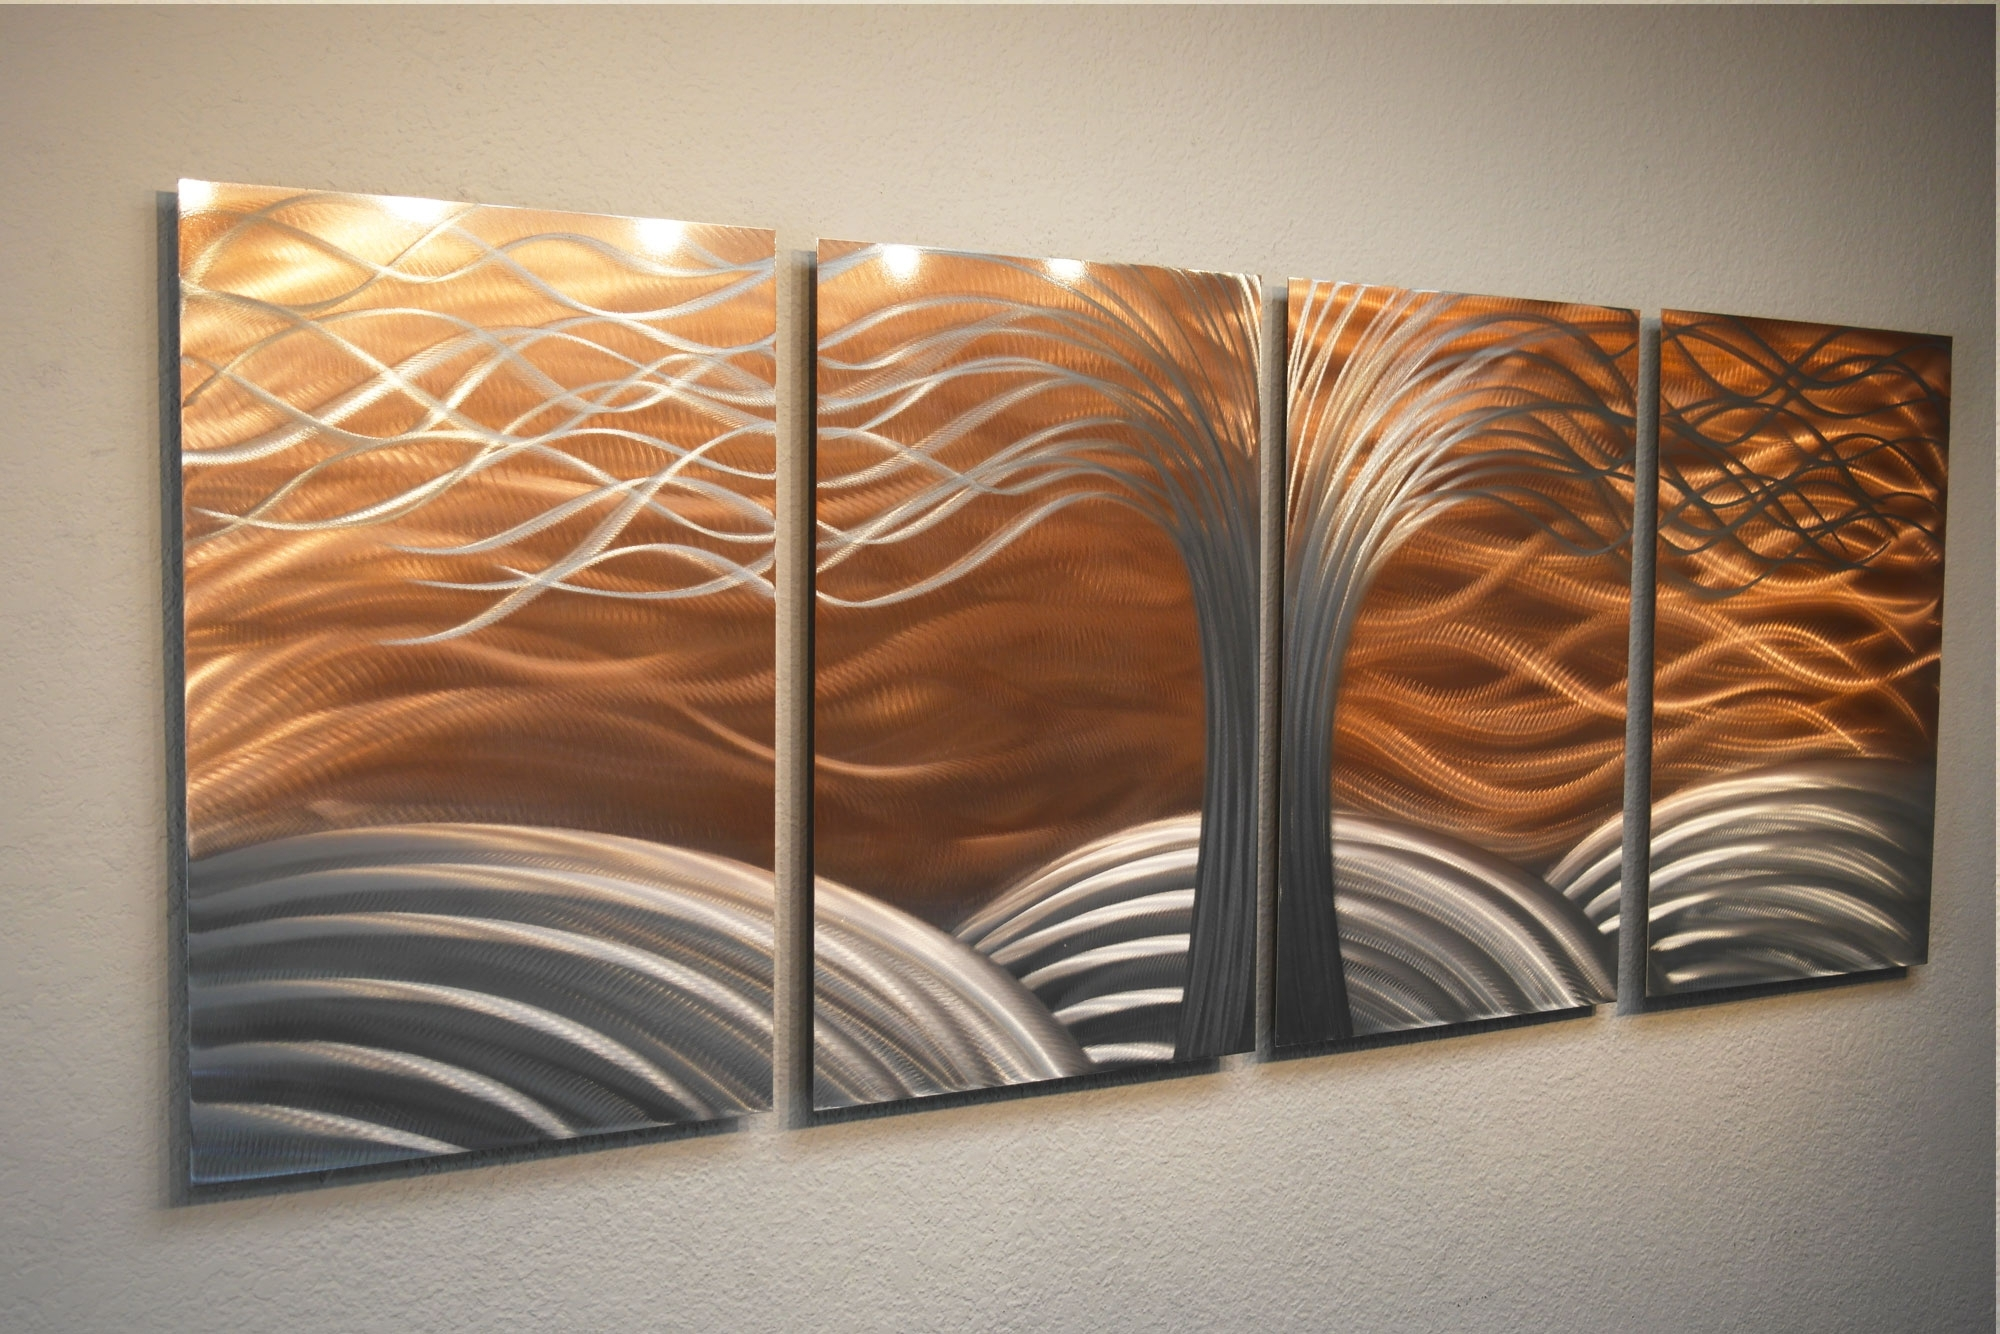 2018 Tree Of Life Bright Copper – Metal Wall Art Abstract Sculpture Within Abstract Copper Wall Art (View 2 of 15)